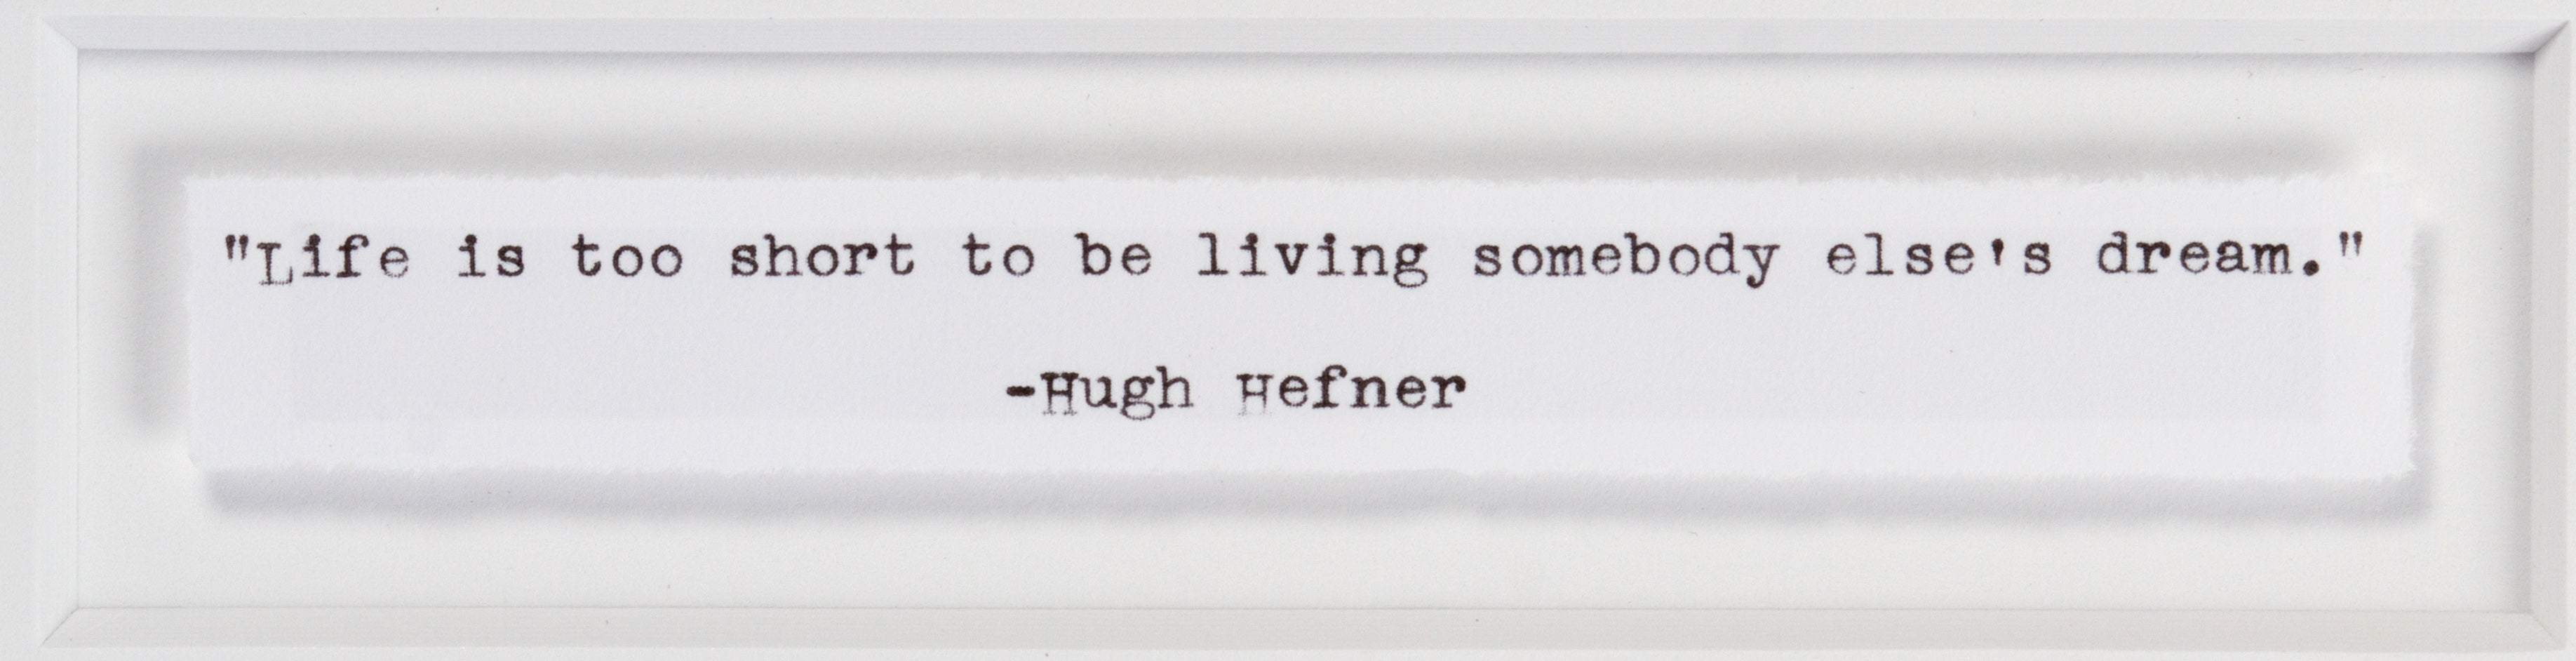 "Signed Hugh Hefner: ""Life is too short to be living someone else's dream."""